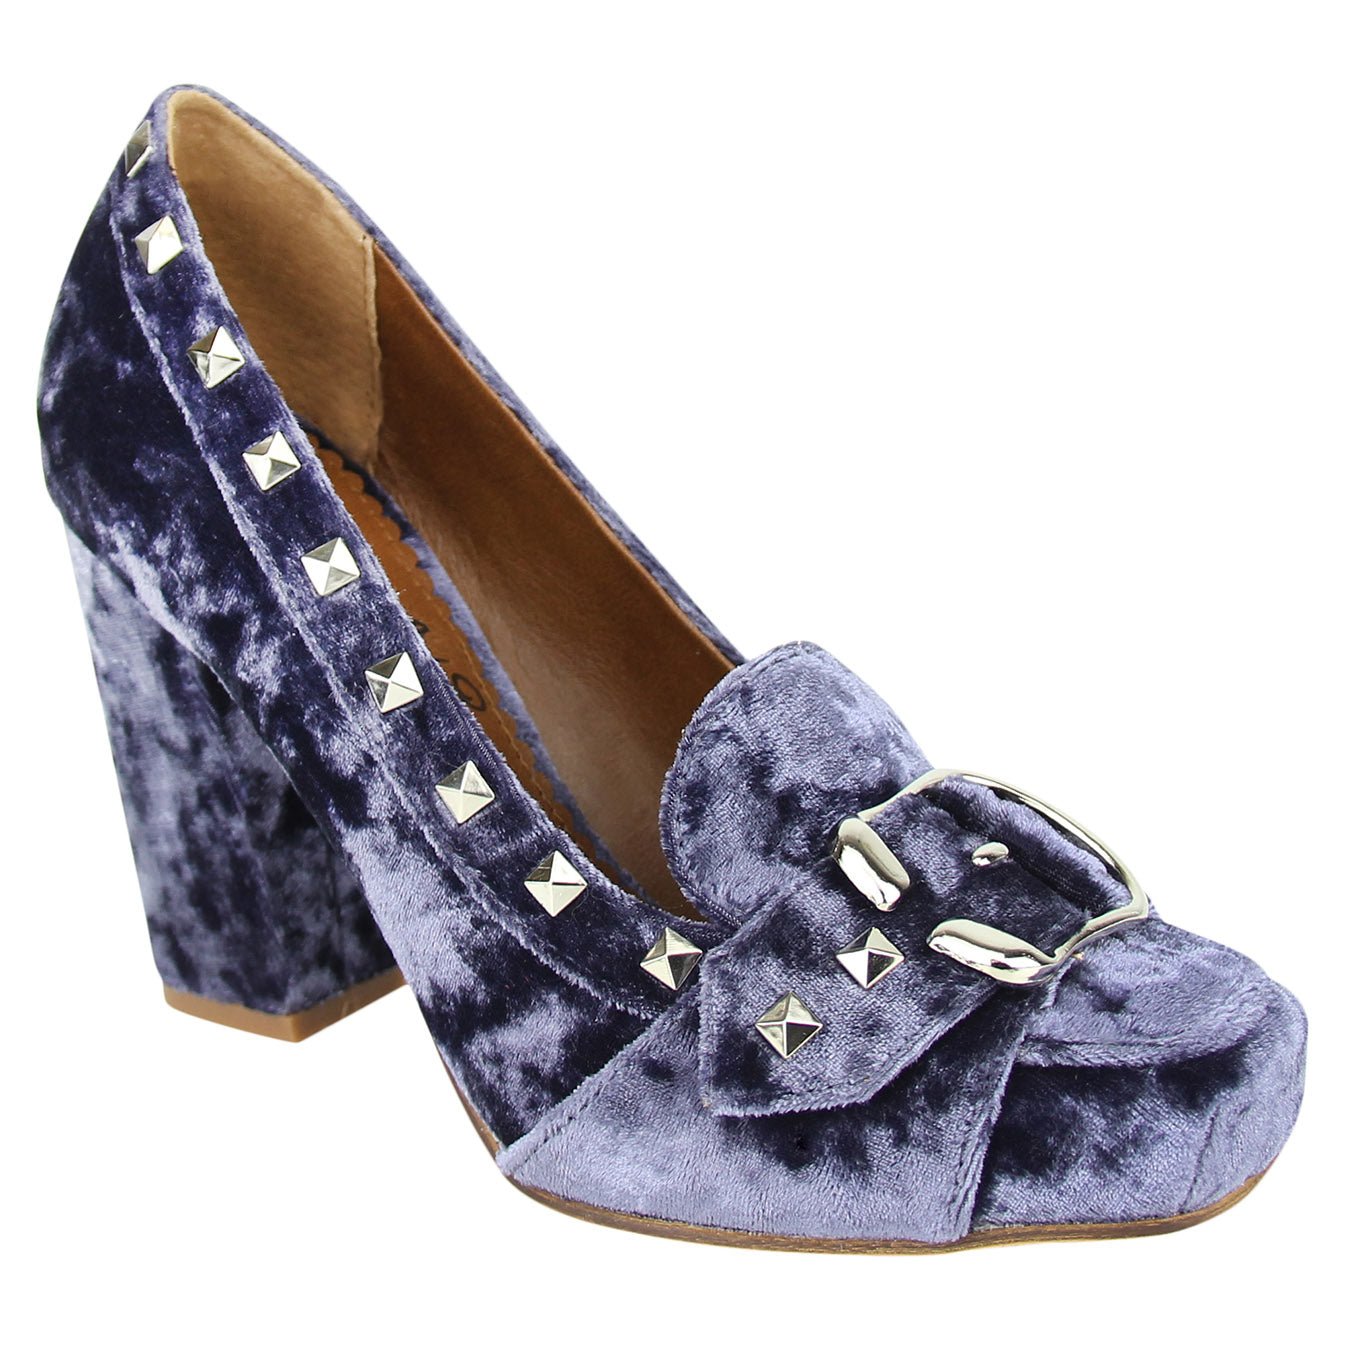 naughty_monkey_pump_heel-velvet_studs-buckle_pin_up_women_navy